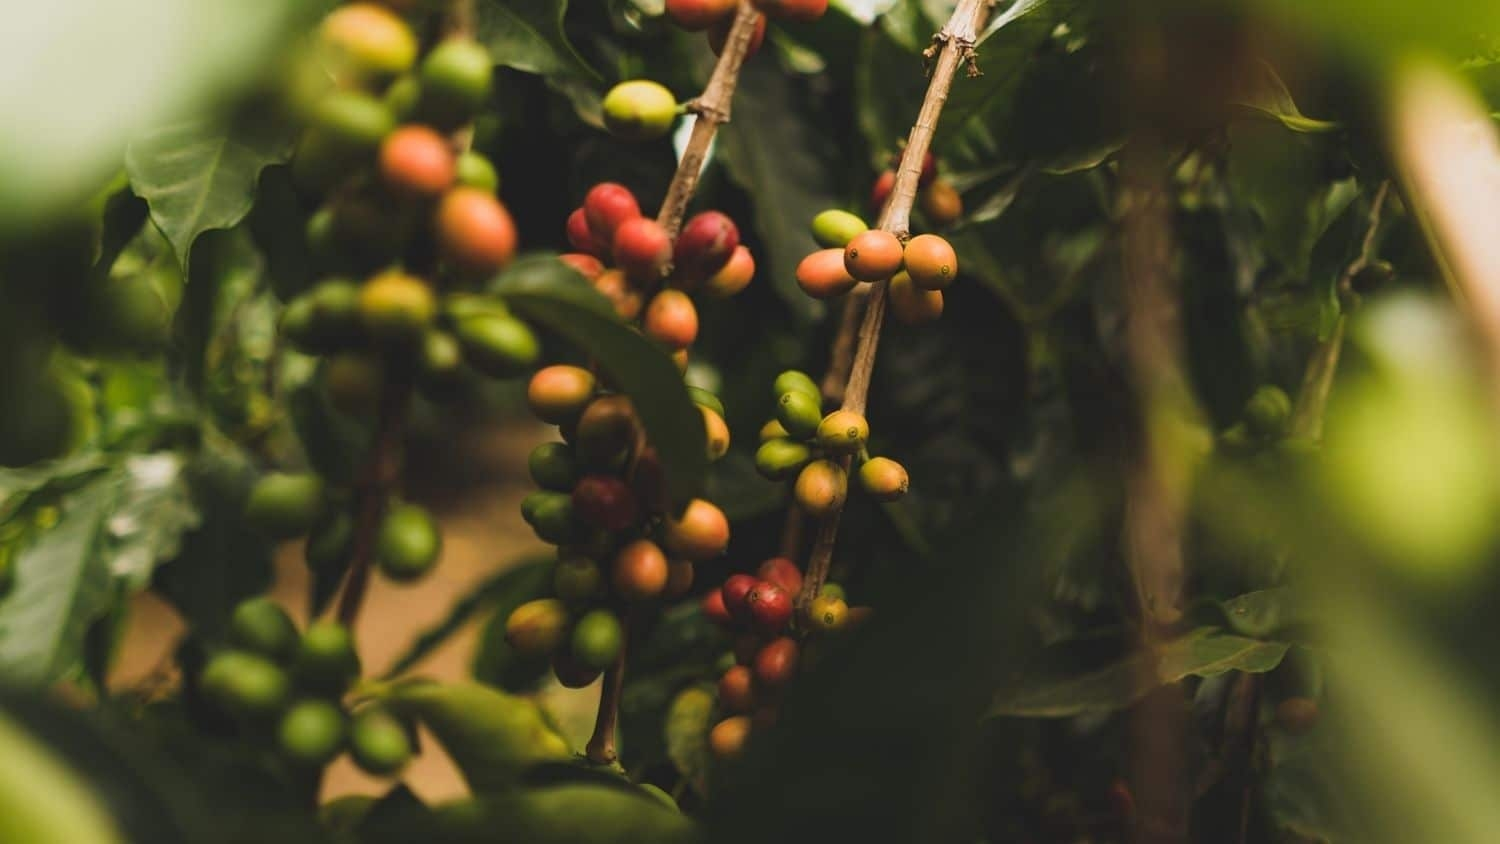 Coffee tree - Many Nonprofits, Companies Report Using Commercial Species in Tree Planting Projects - College of Natural Resources News NC State University